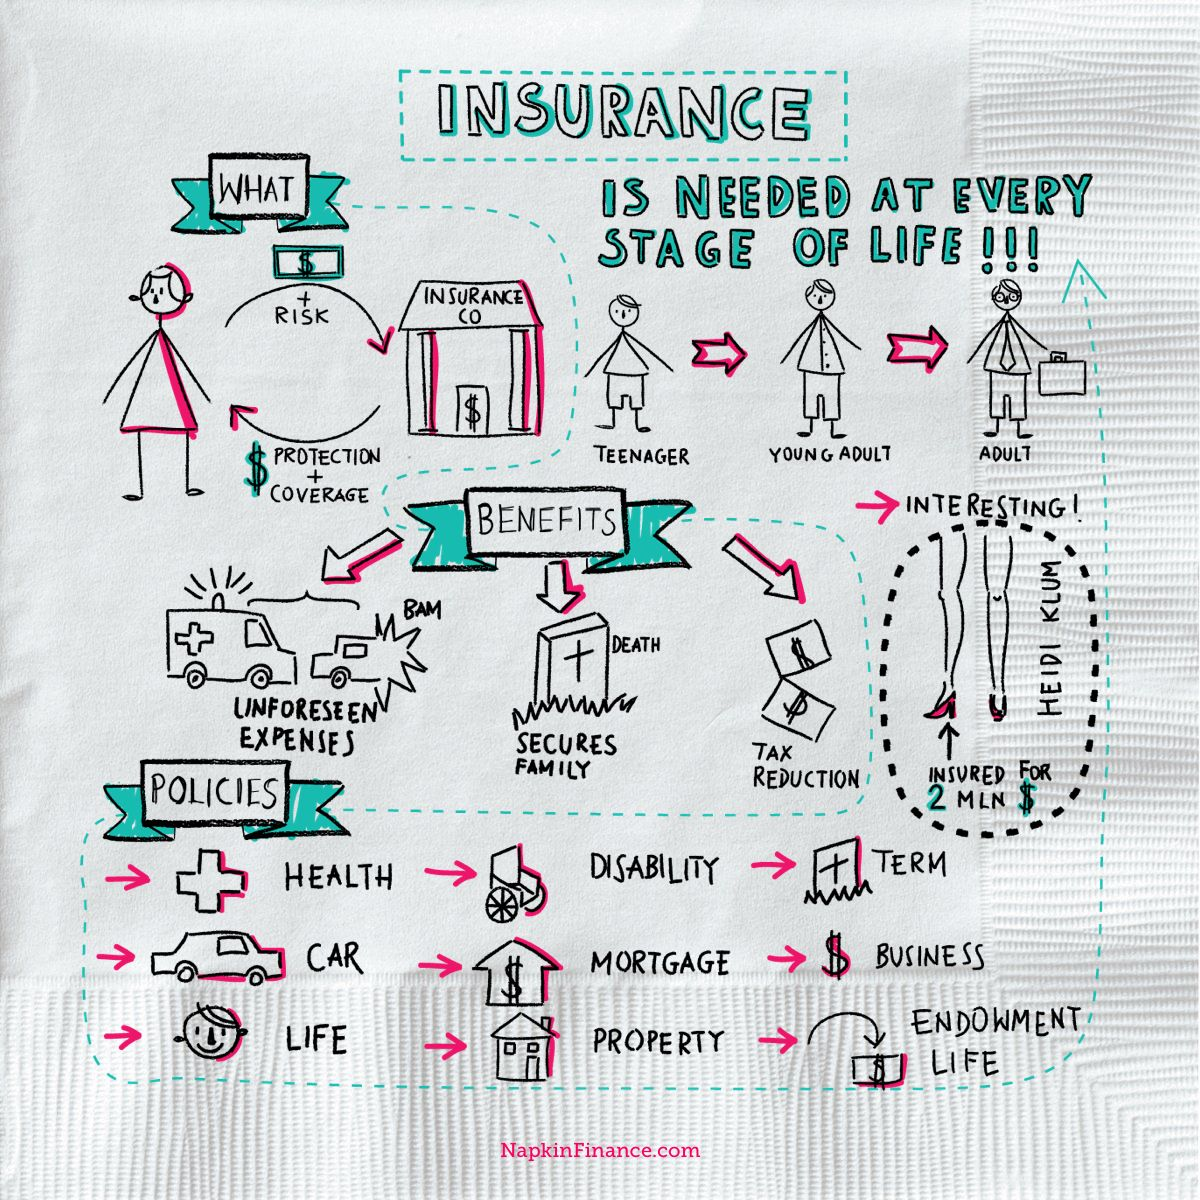 Defining Residential Landlord Insurance Insurance For Landlords Landlord Insurance Being A Landlord Content Insurance